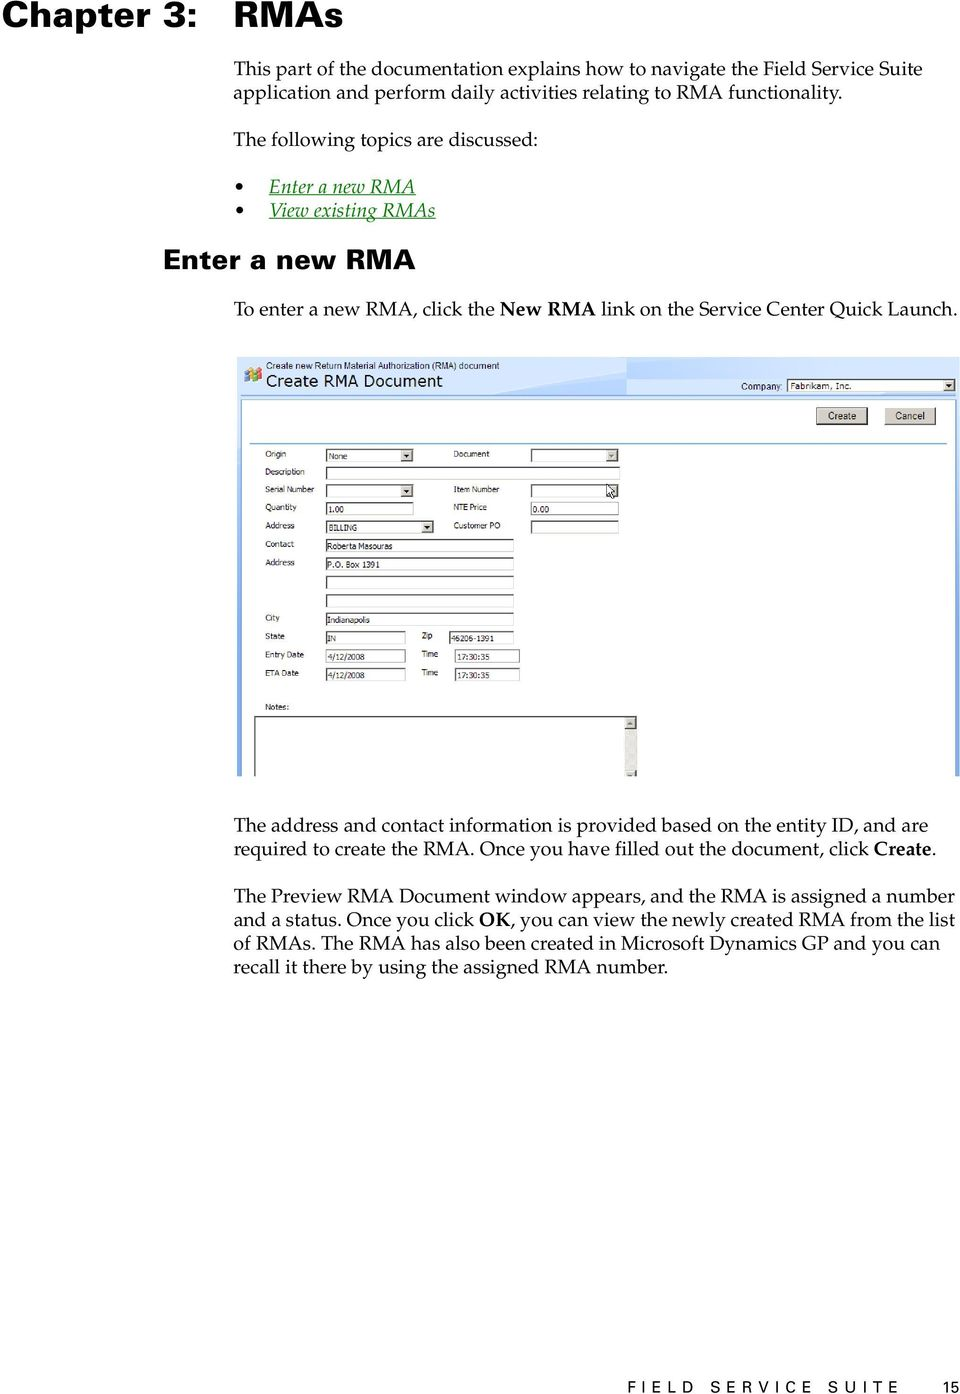 The address and contact information is provided based on the entity ID, and are required to create the RMA. Once you have filled out the document, click Create.